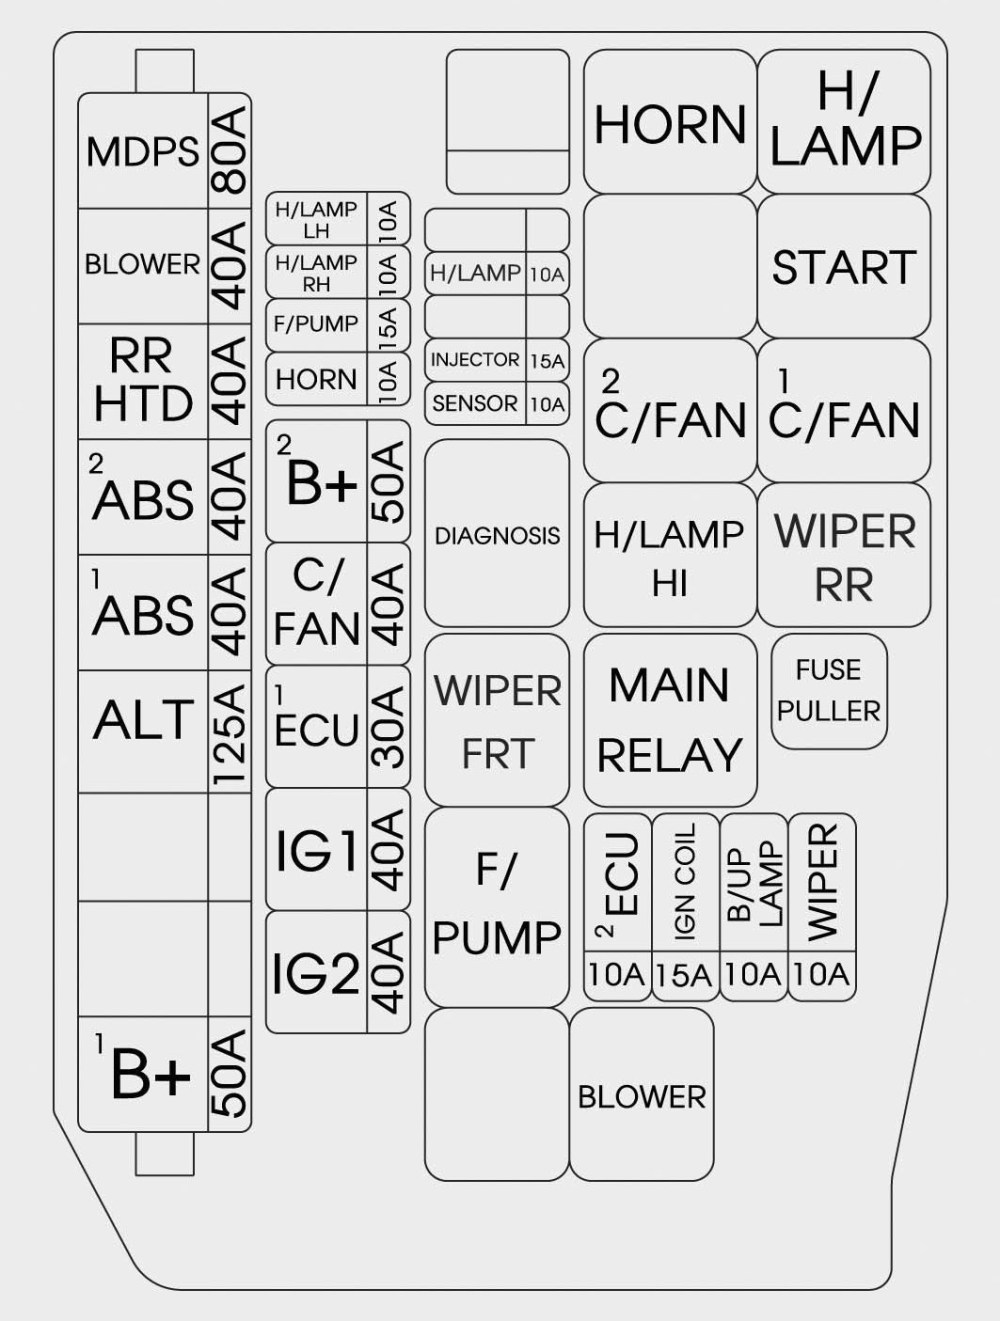 medium resolution of 2013 hyundai fuse box wiring diagram 2014 elantra fuse diagram 2013 hyundai fuse box wiring diagram